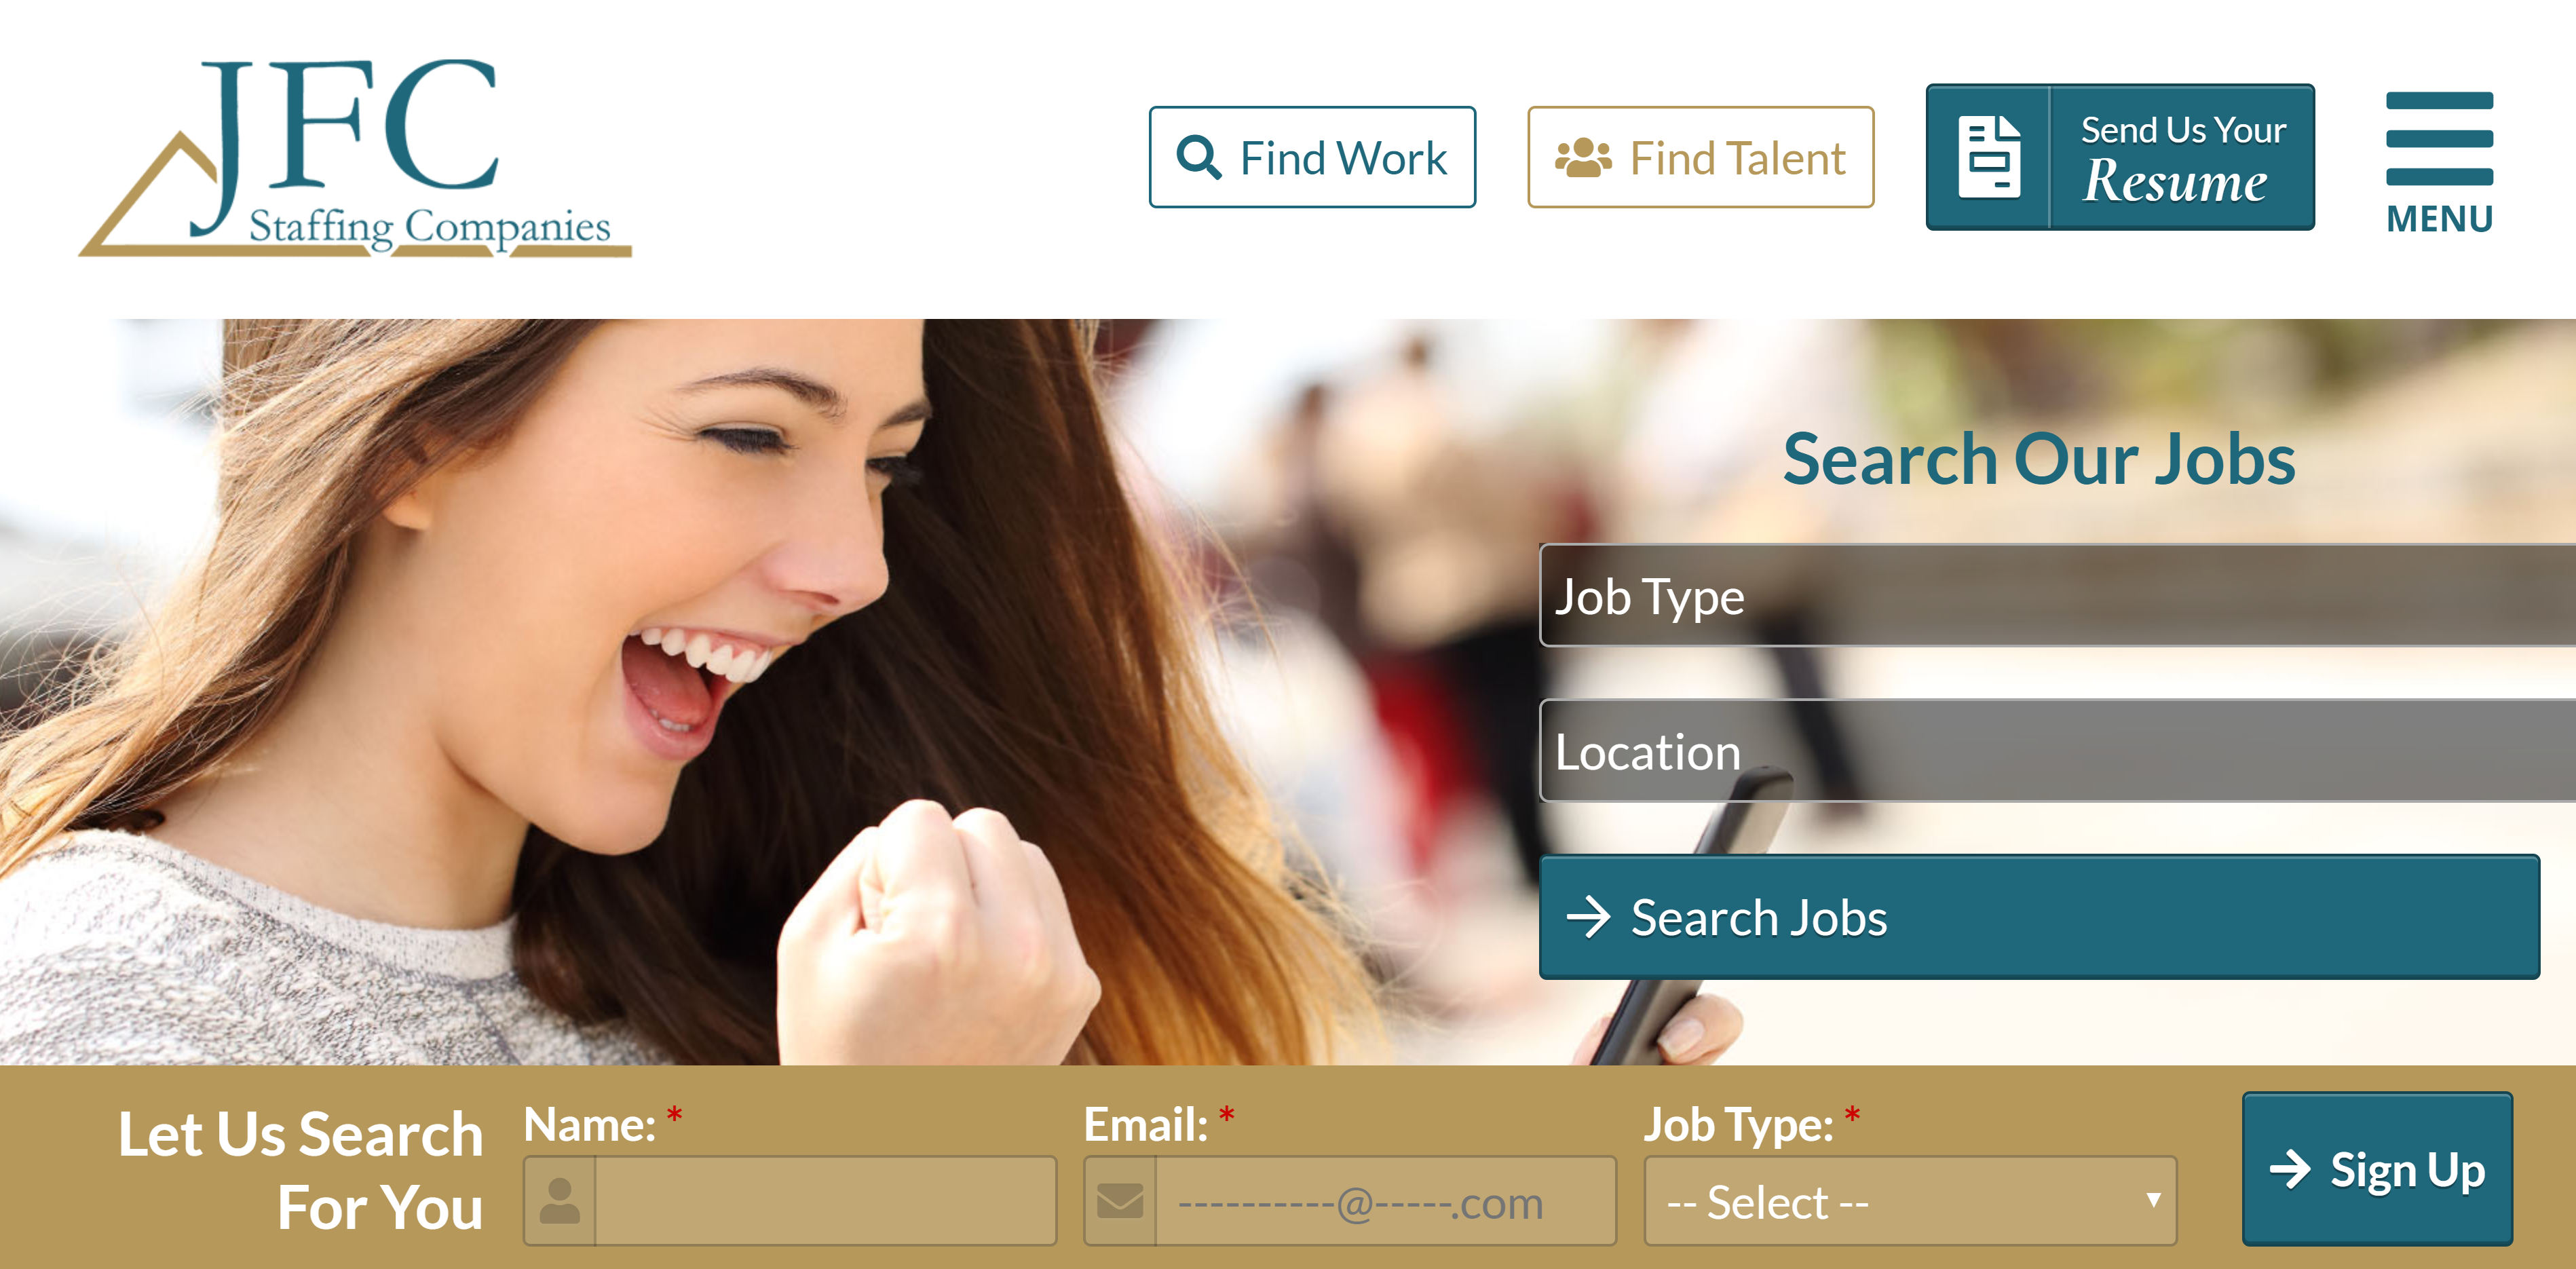 JFC Staffing Search Page Website Design by Valor Creative